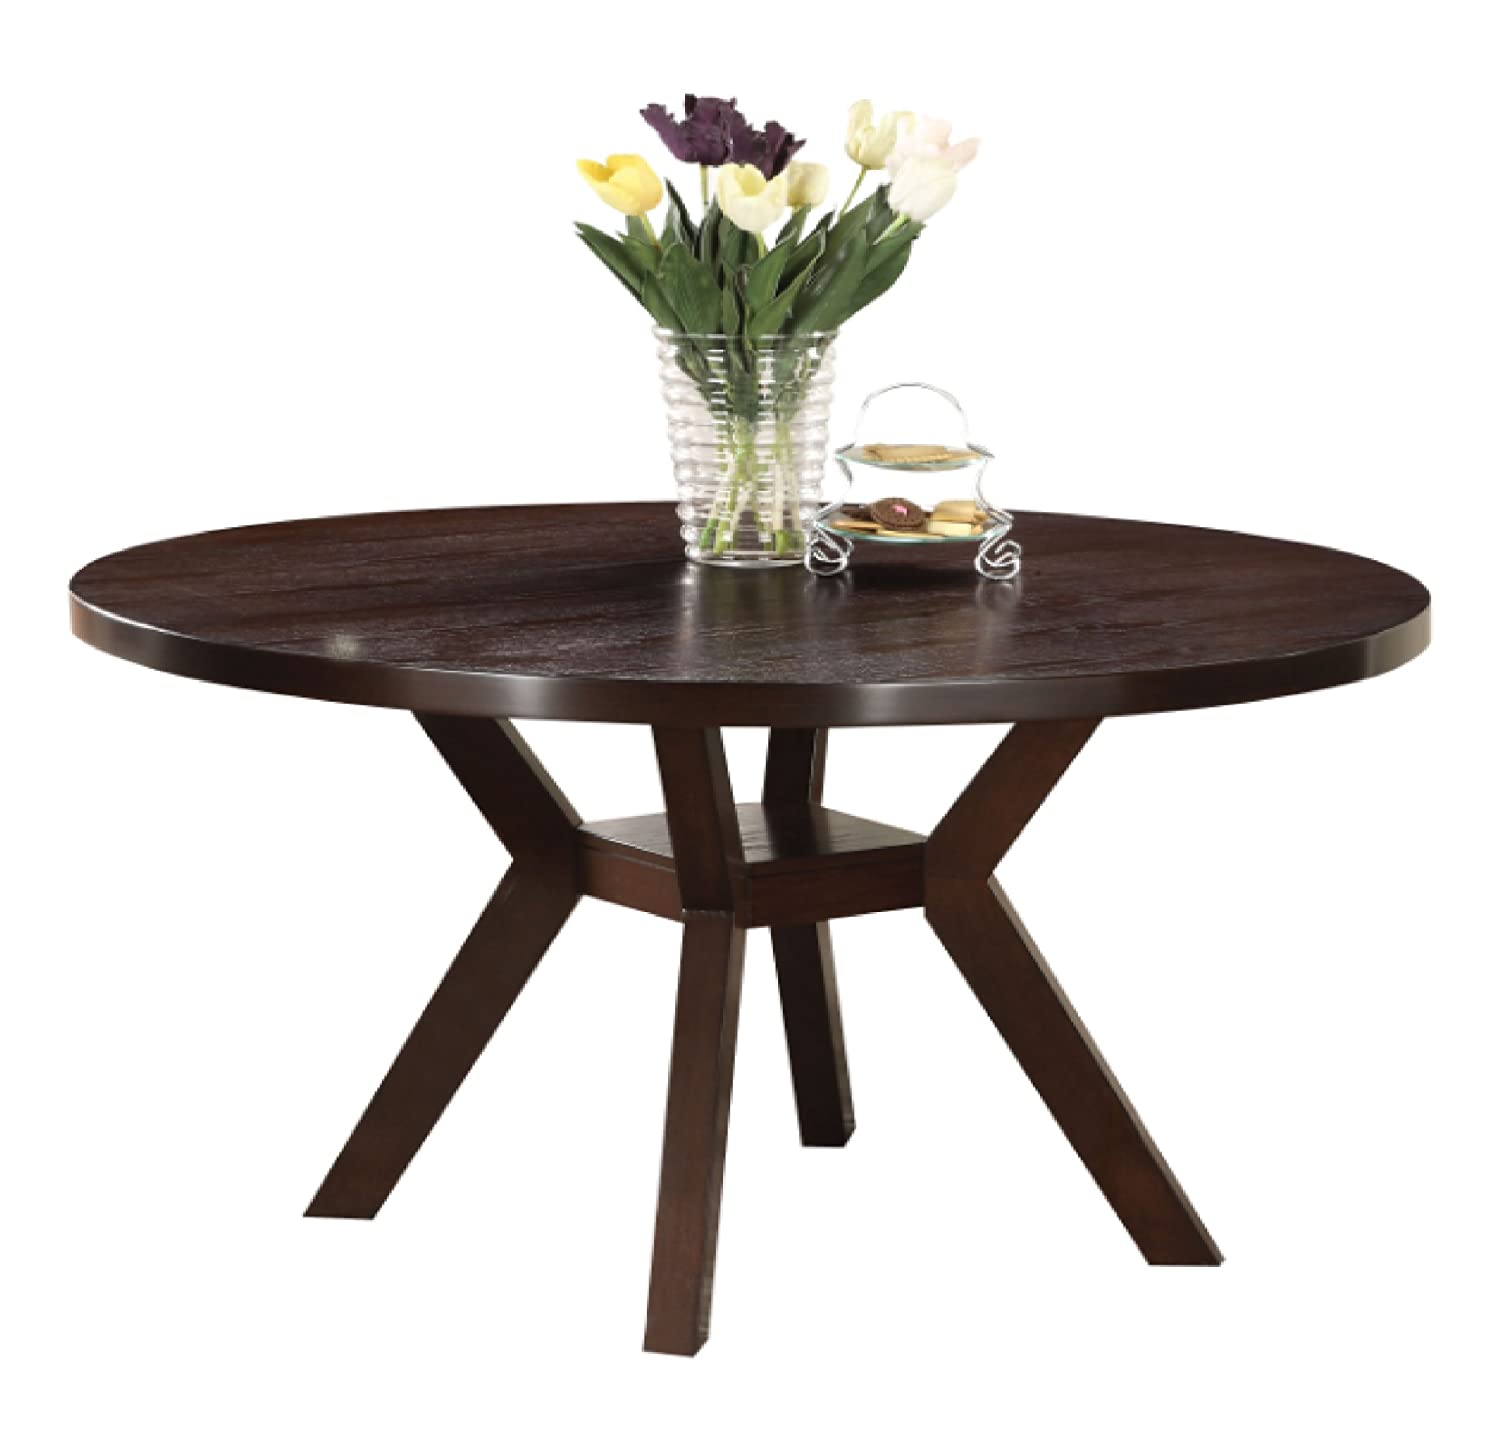 Round Wood Kitchen Tables Amazon acme 16250 drake espresso round dining table 48 inch amazon acme 16250 drake espresso round dining table 48 inch tables workwithnaturefo